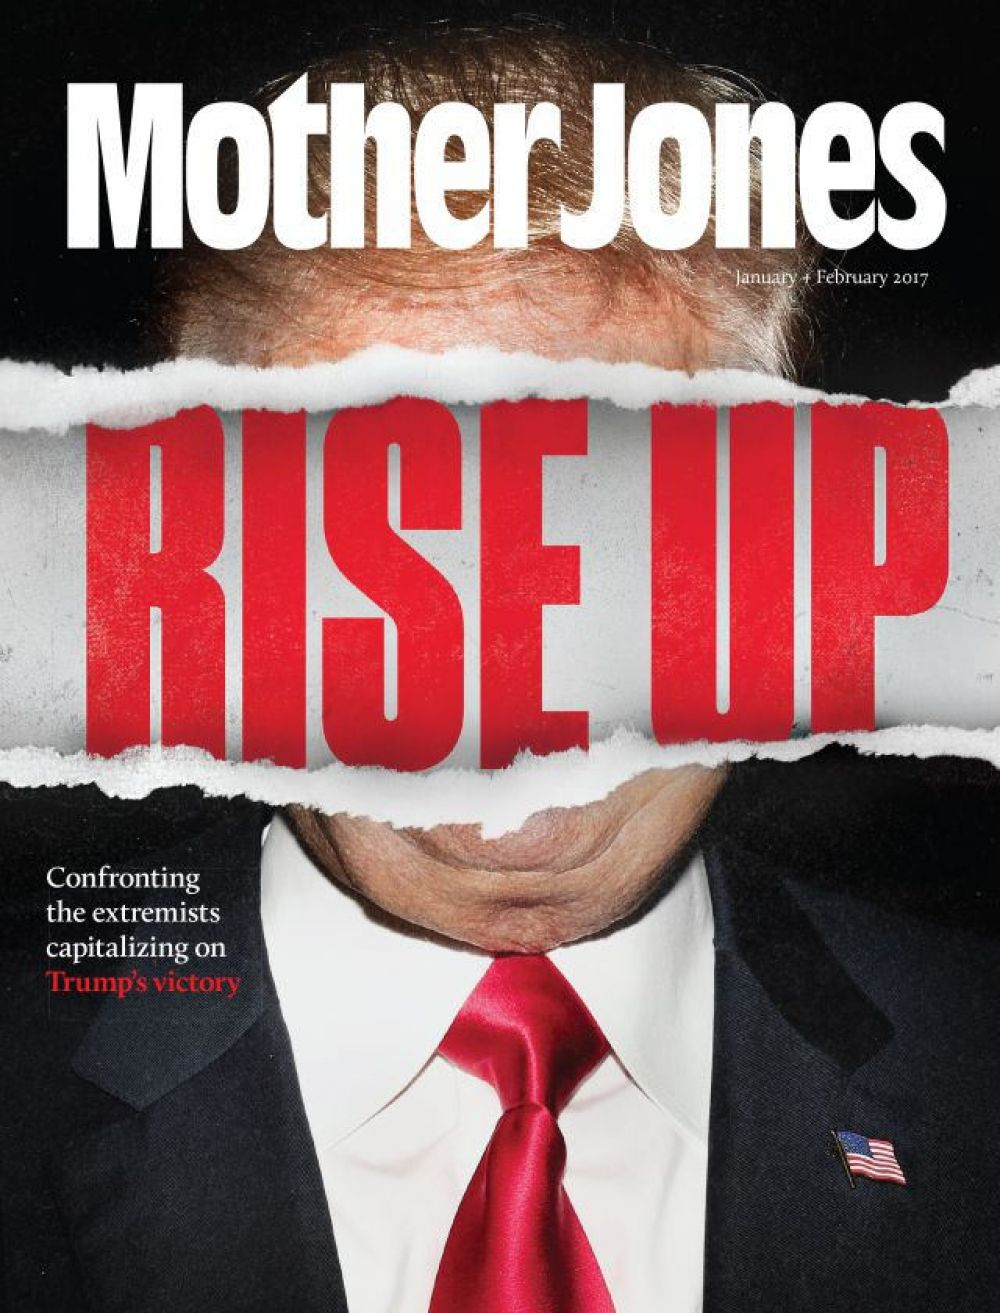 Журнал Mother Jones: «Поднимайтесь»